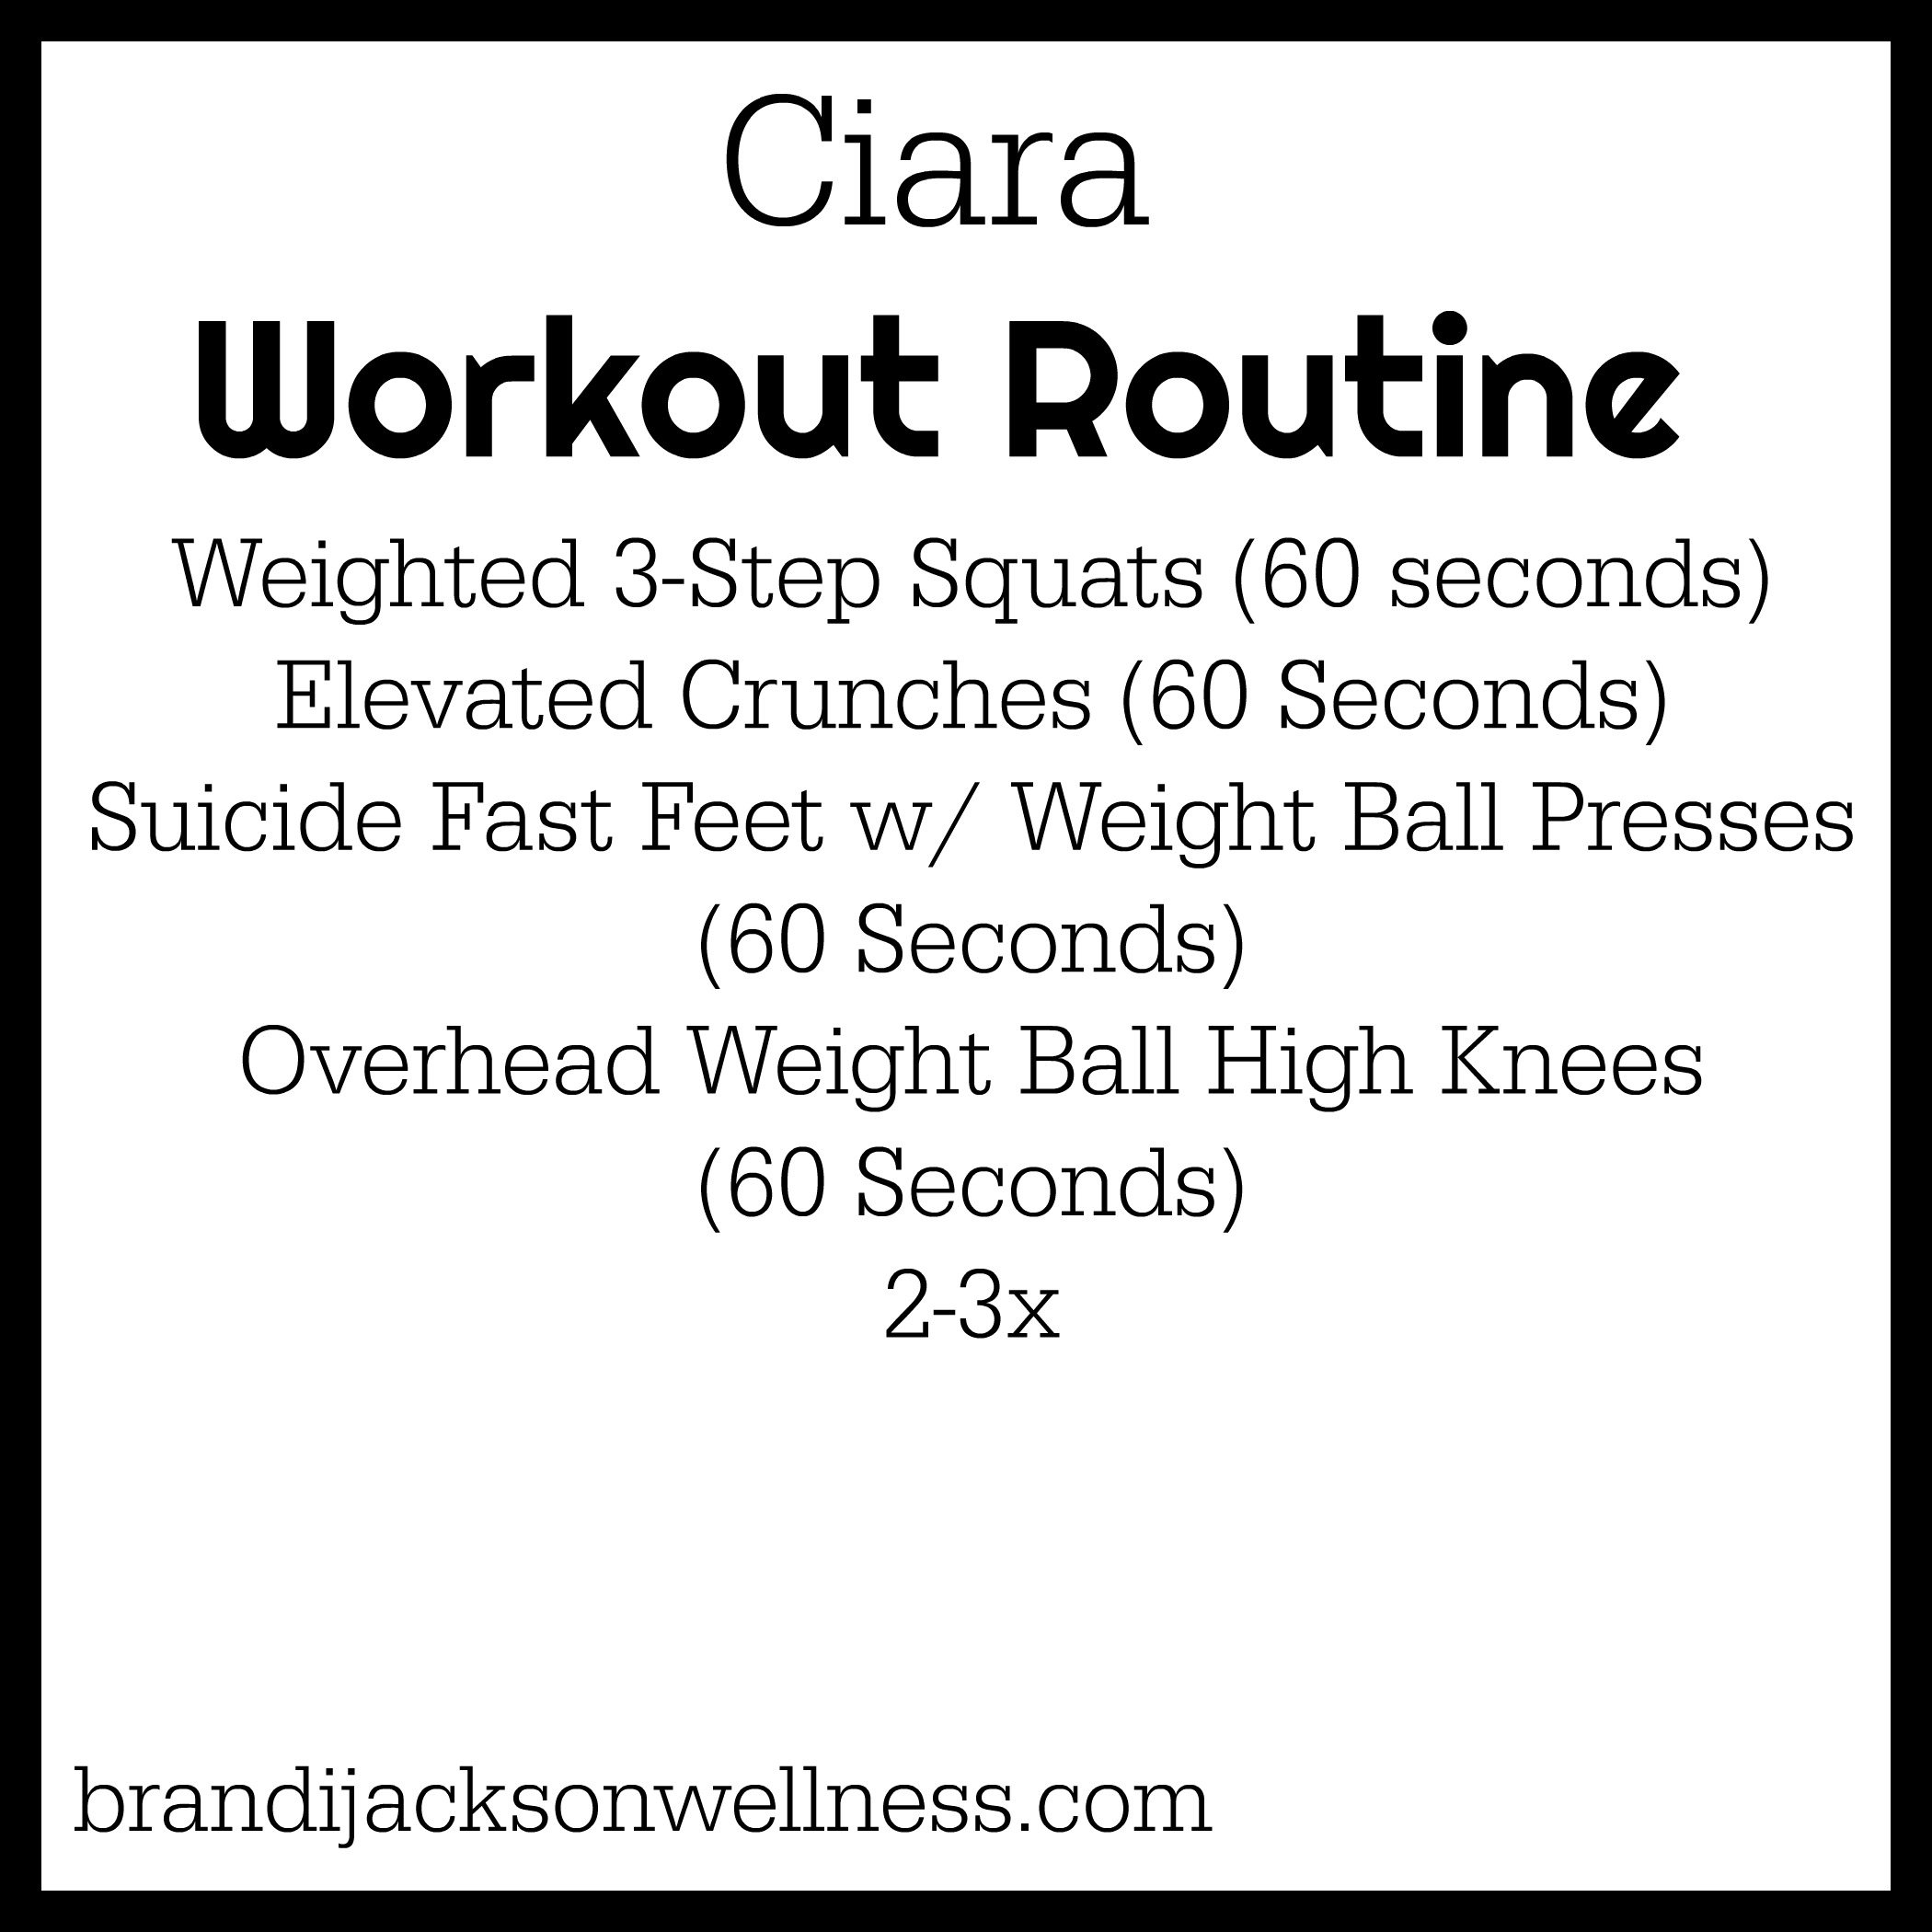 I Tried Ciaras Full Body Cardio Workout Routine For Toned Abs Glutes Arms